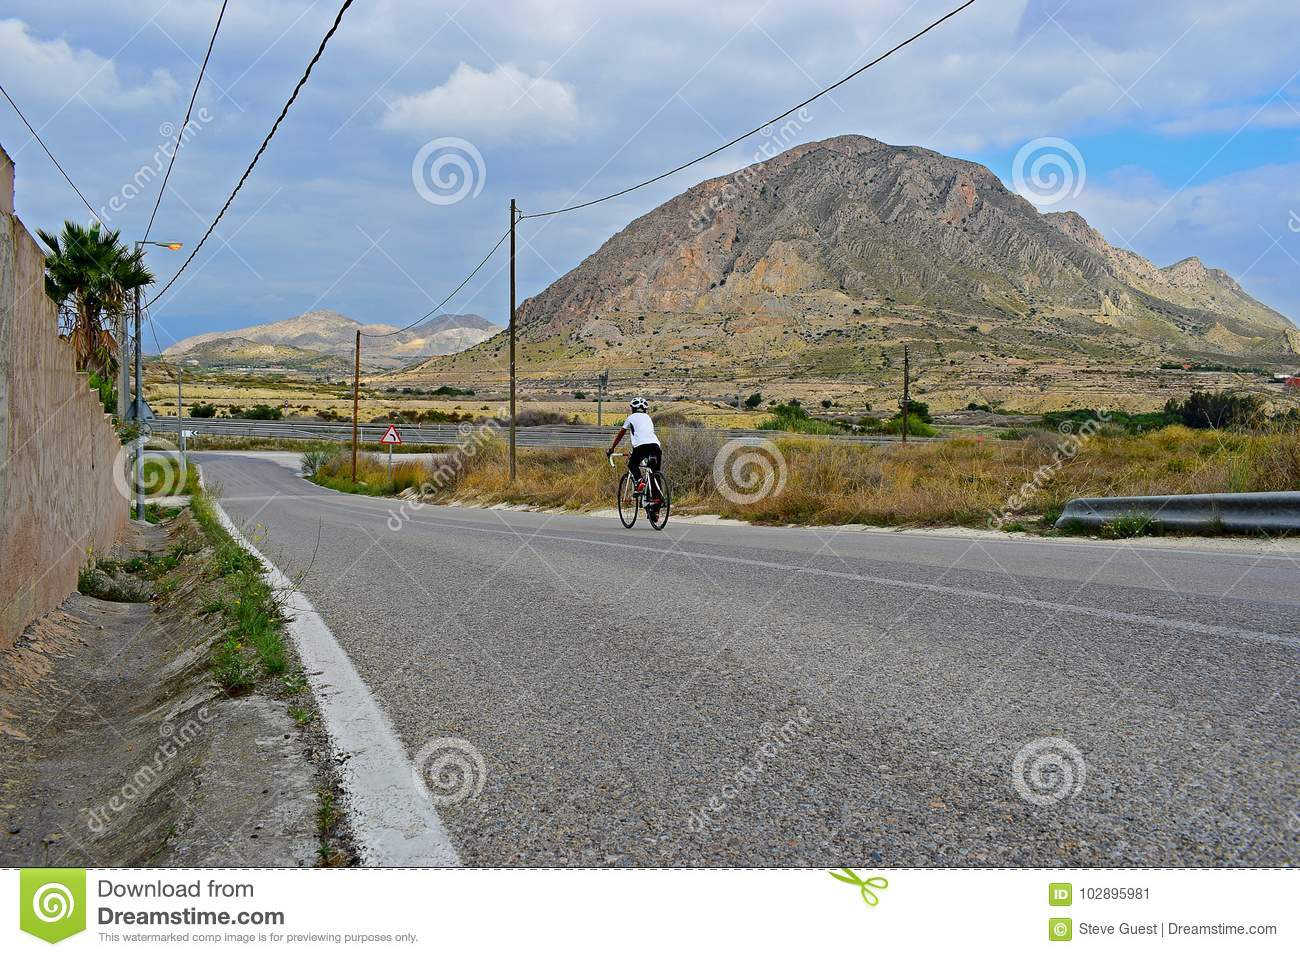 Rear View Of a Cyclist In The Mountains With Stunning Scenery